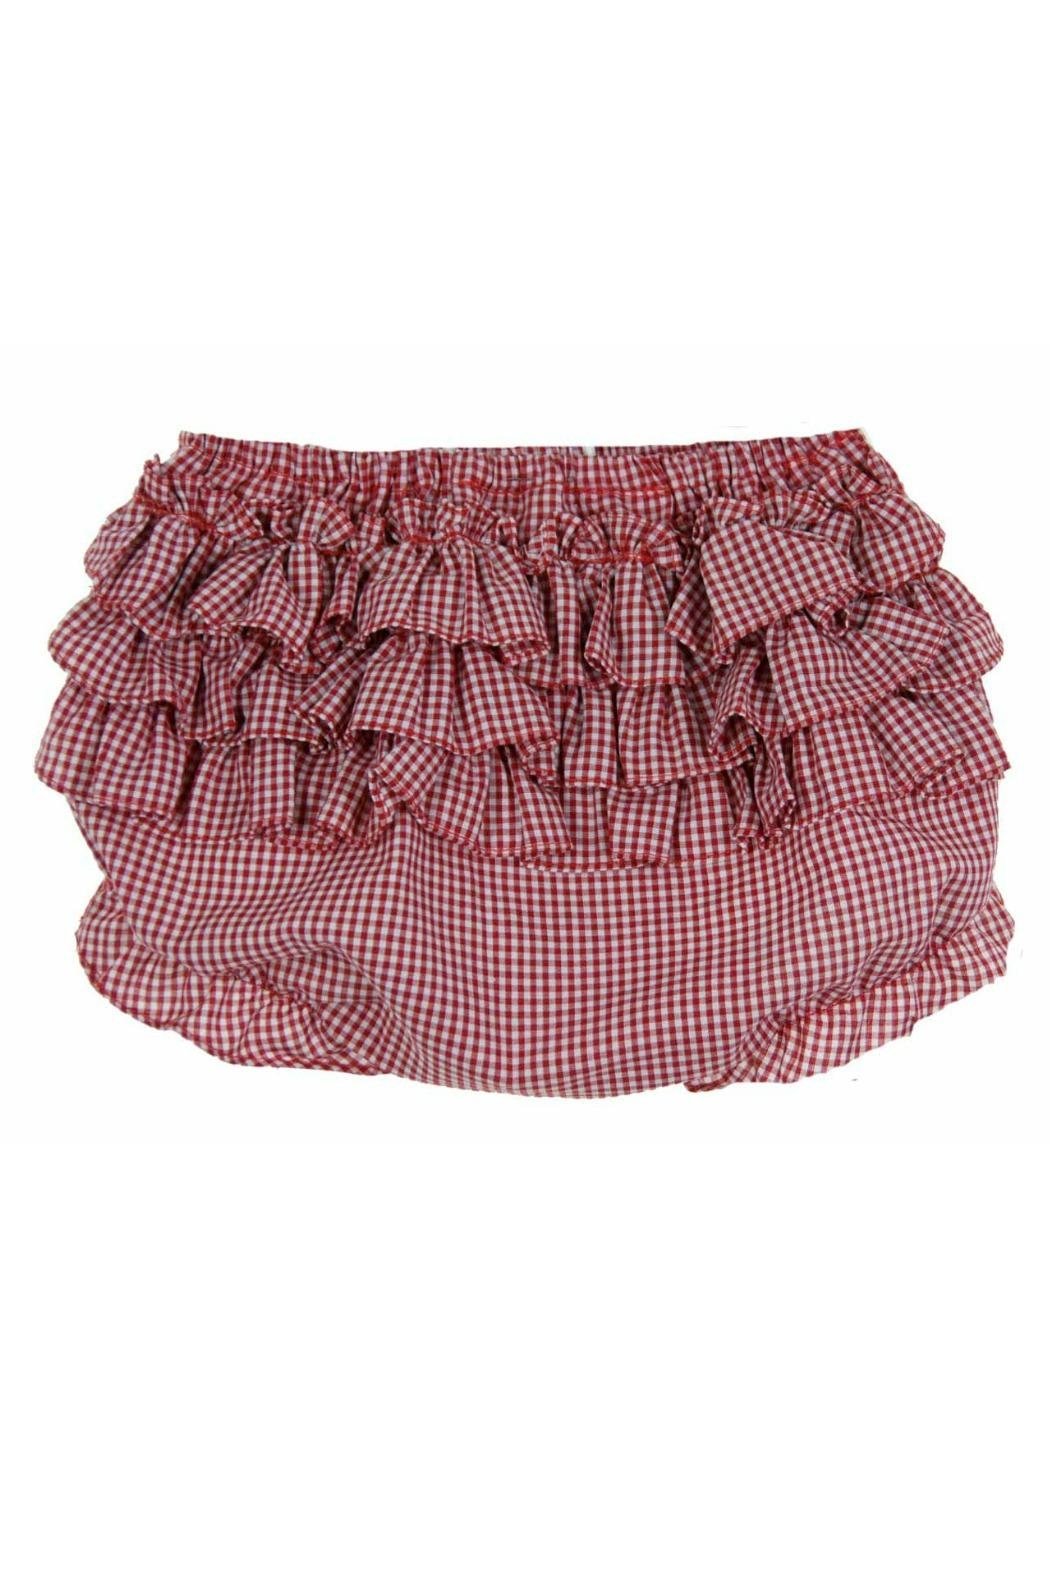 Rosalina Red-Gingham-Ruffled Diaper Cover - Front Cropped Image